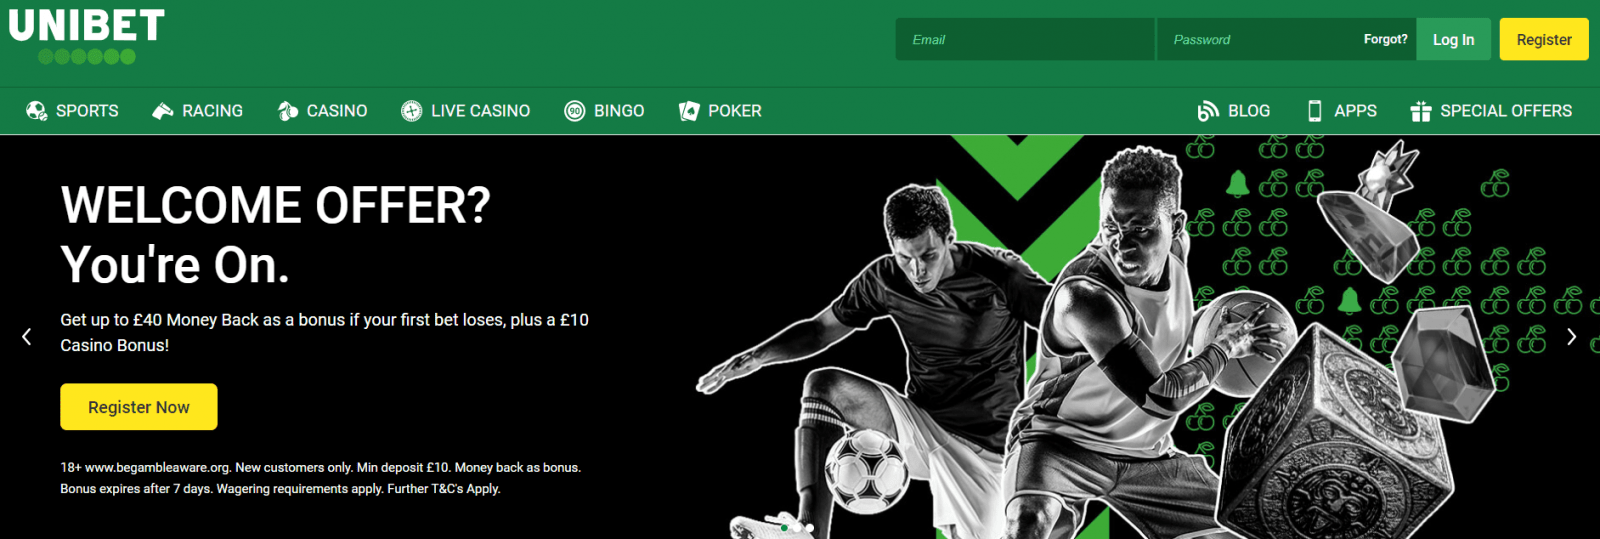 live streaming betting sites Unibet